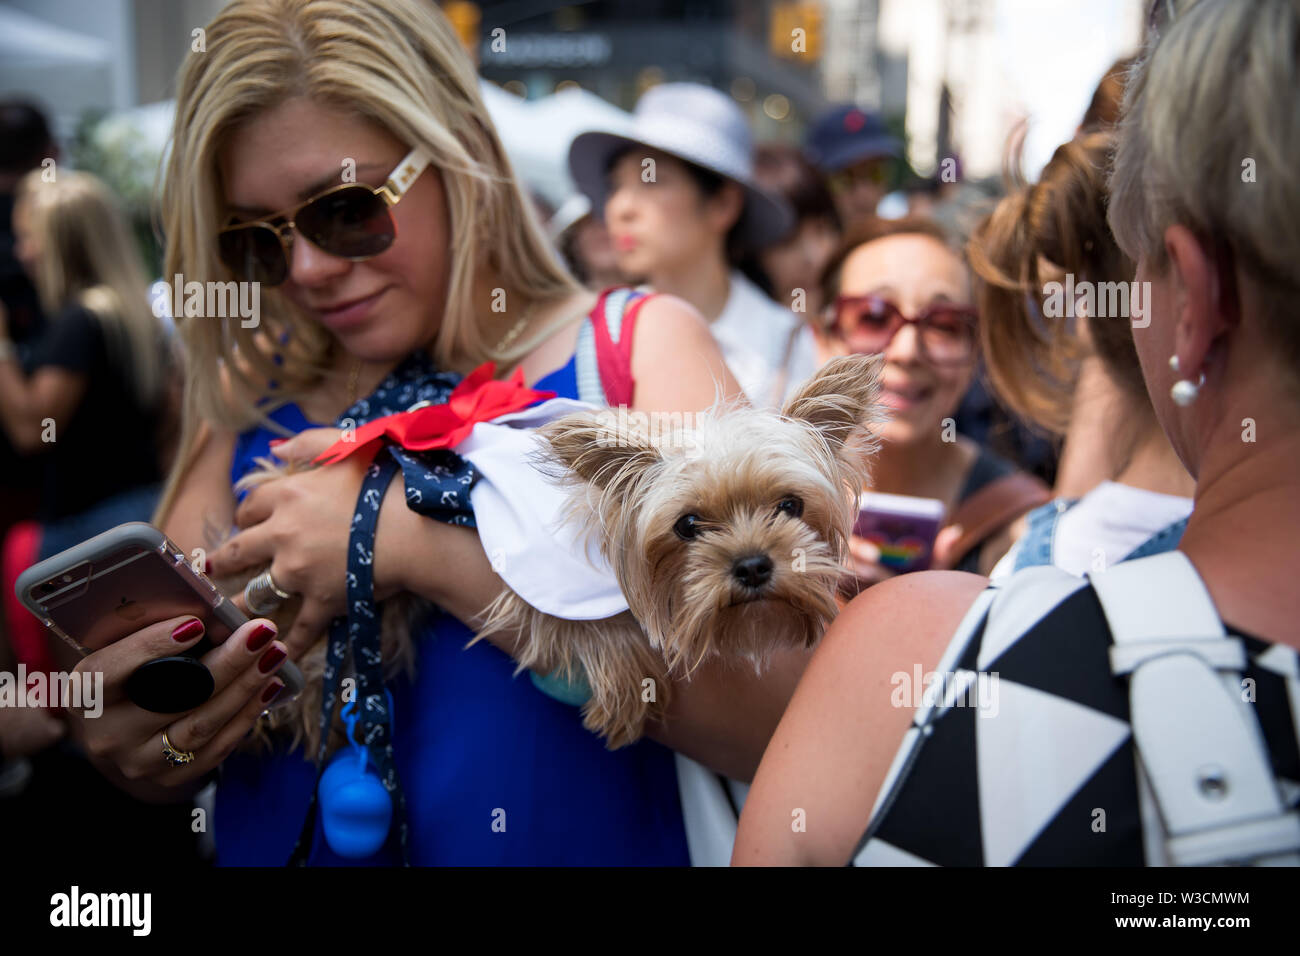 New York, USA. 14th July 2019. New York, French National Day. 14th July, 1789. A woman carrying a dressed dog attends the French Institute Alliance Francaise (FIAF)'s Bastille Day Celebration in New York, the United States, July 14, 2019. Bastille Day, also known as the French National Day, commemorates the start of the French Revolution and the storming of the Bastille in Paris on July 14, 1789. Credit: Michael Nagle/Xinhua/Alamy Live News - Stock Image